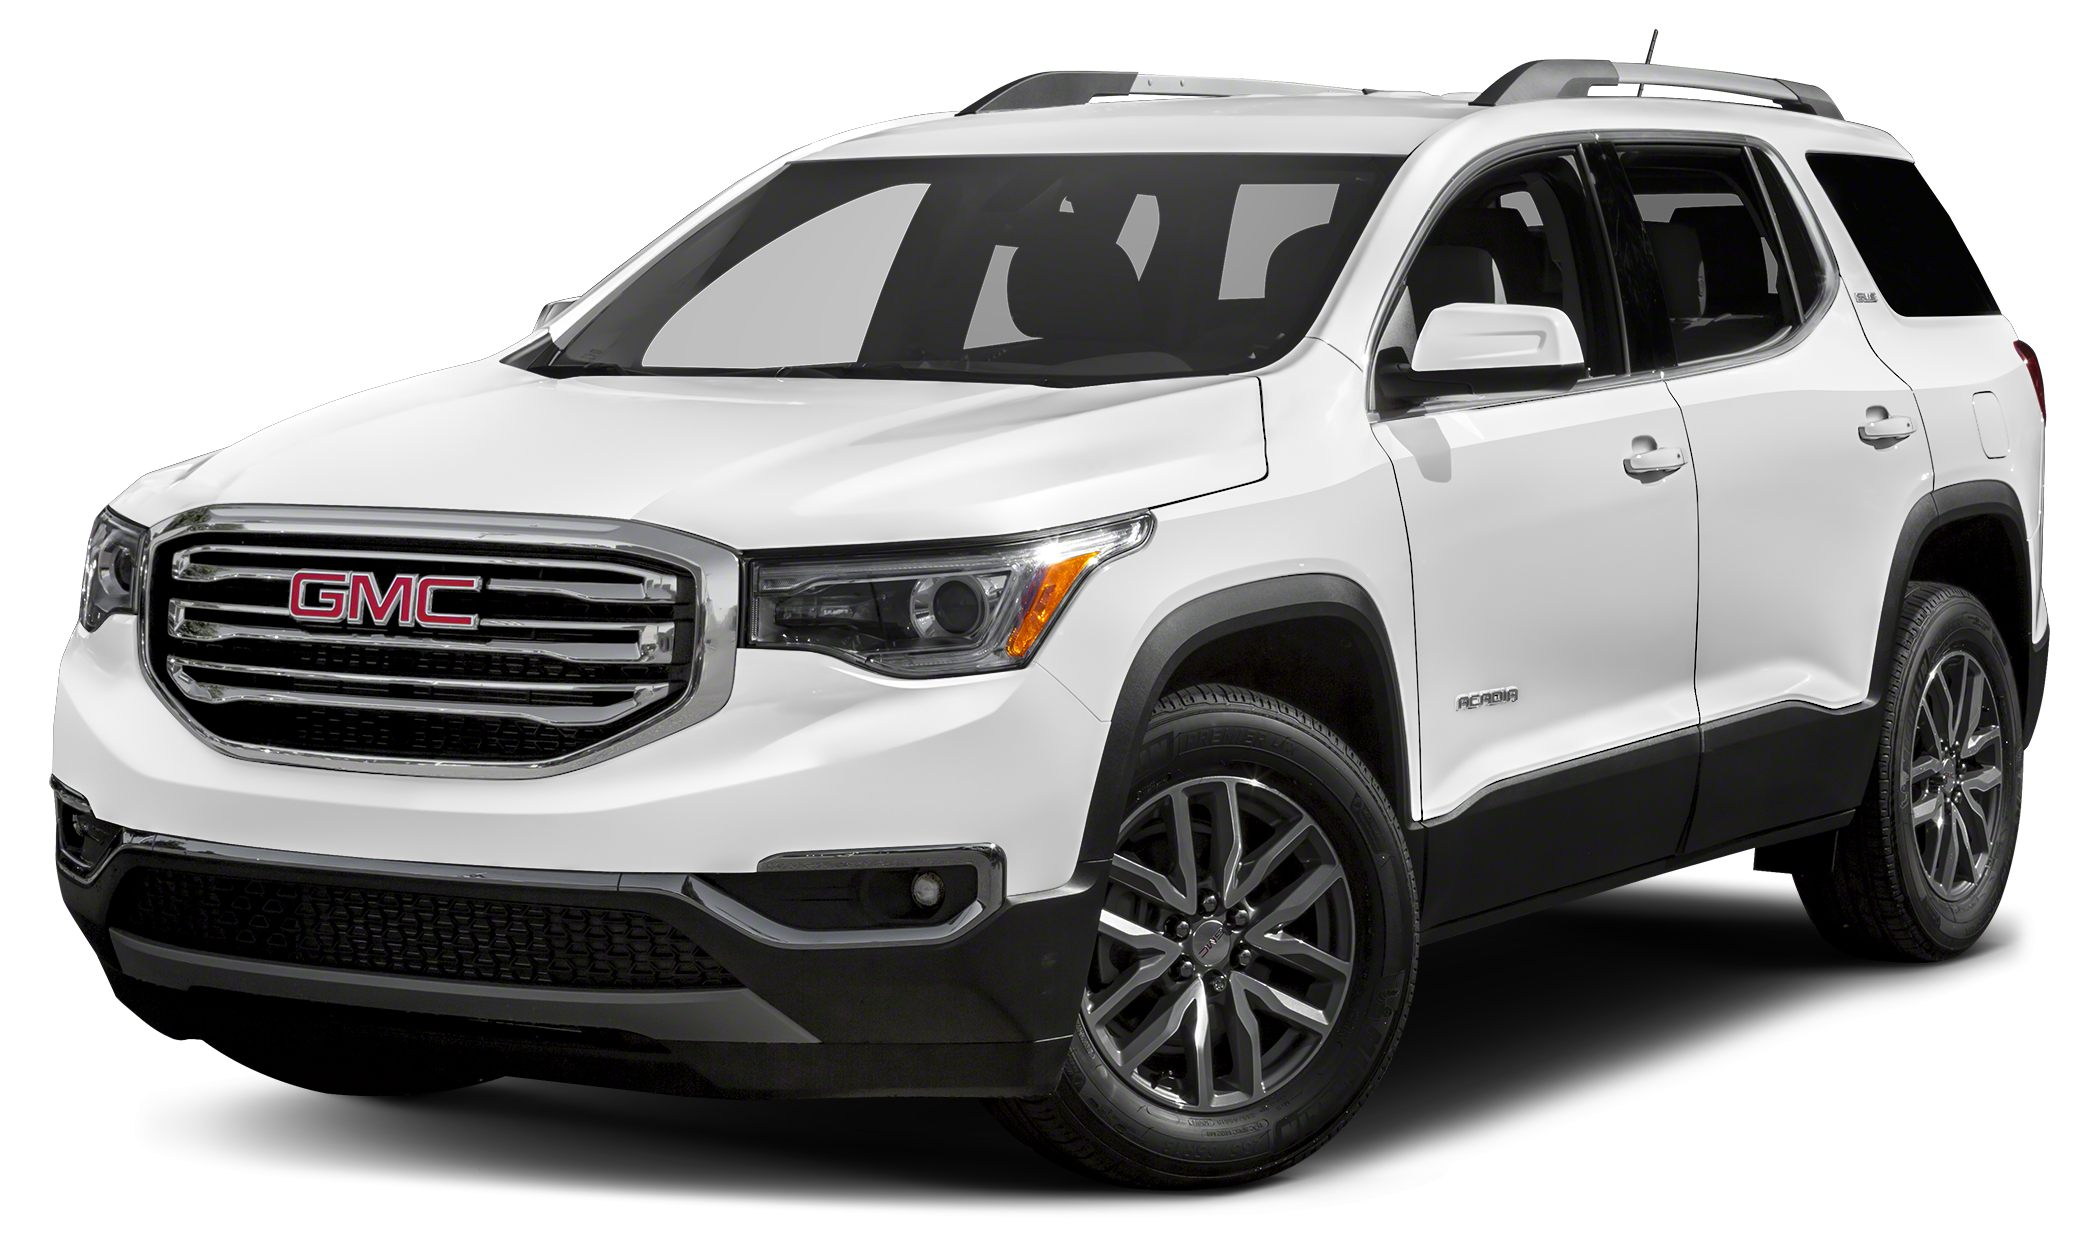 2017 GMC Acadia SLT-1 The all-new 2017 GMC Acadia mid-size SUV is designed to make a lasting impre